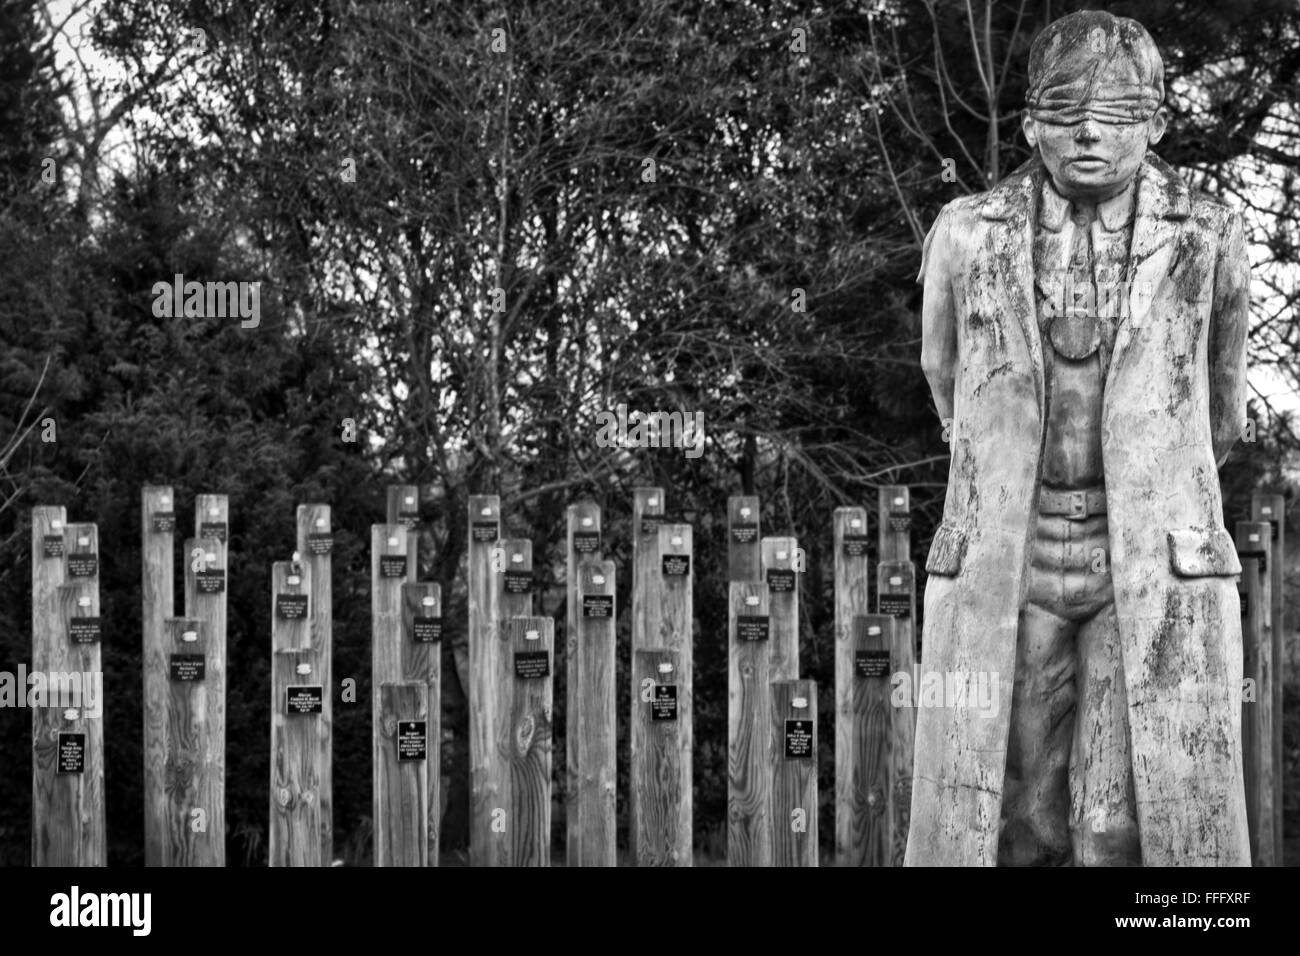 Shot at Dawn Remembrance Statue, Black and white - Stock Image